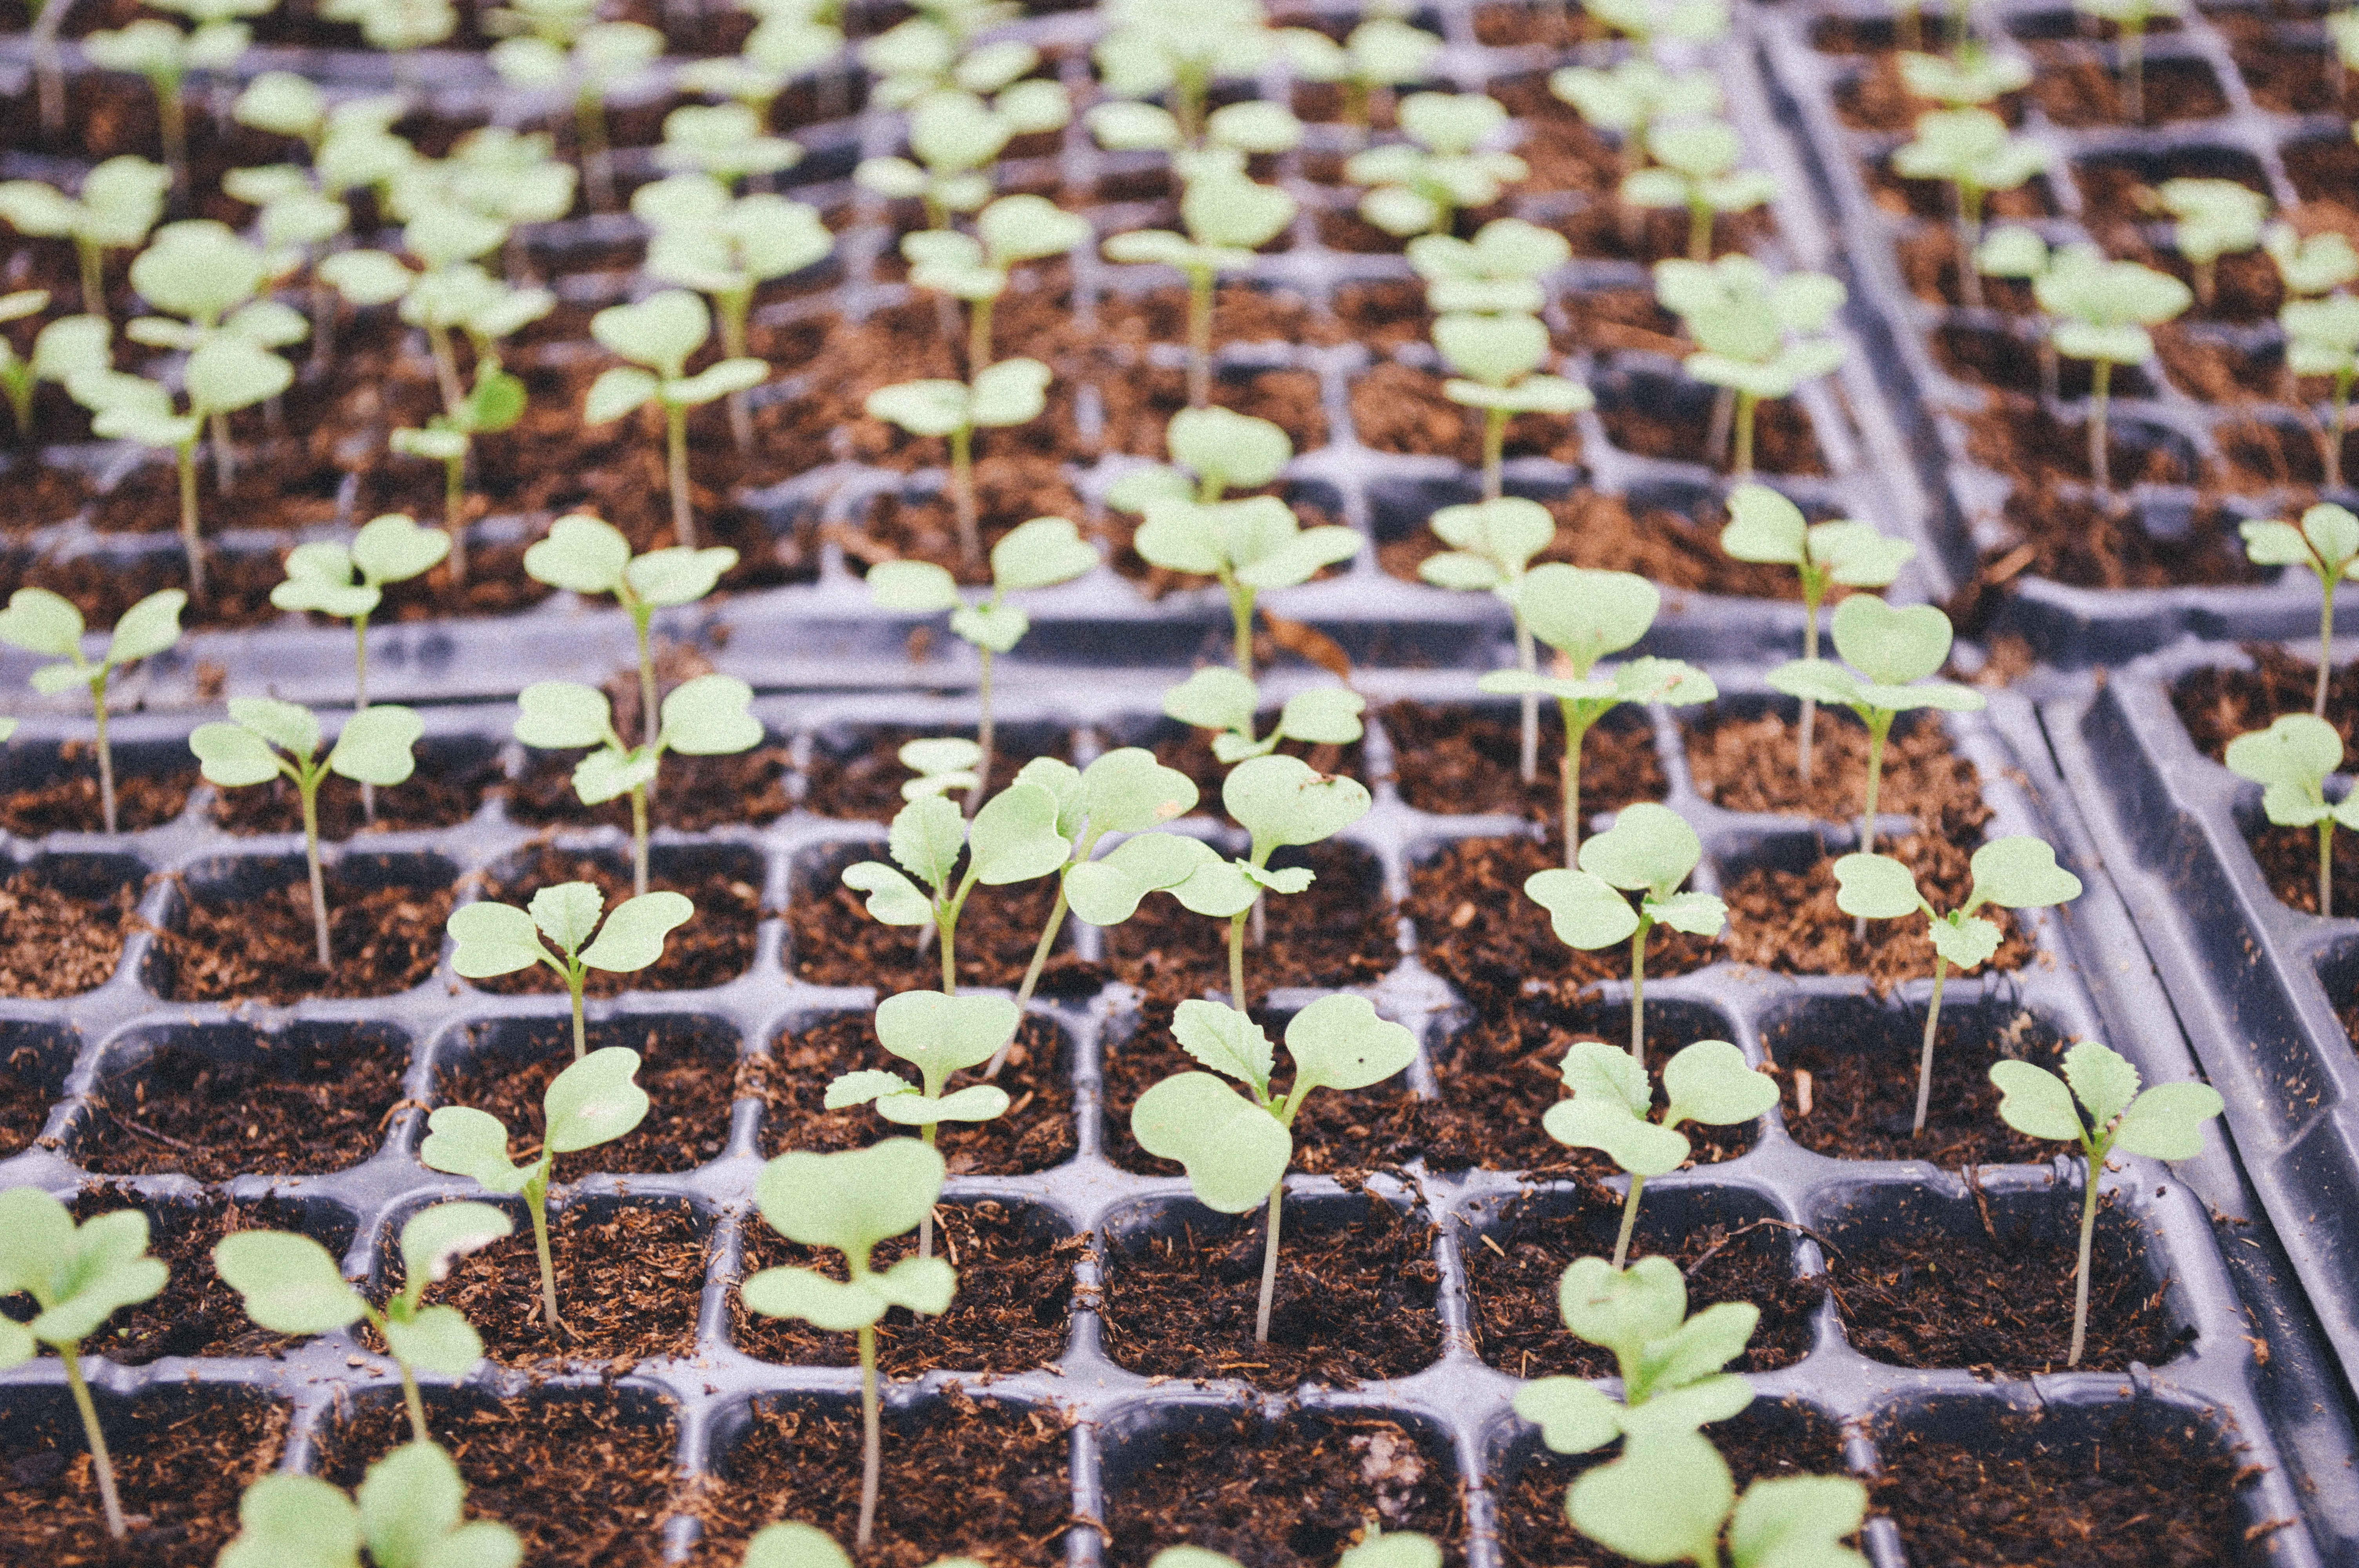 Tips for Starting Your Seedlings This Spring